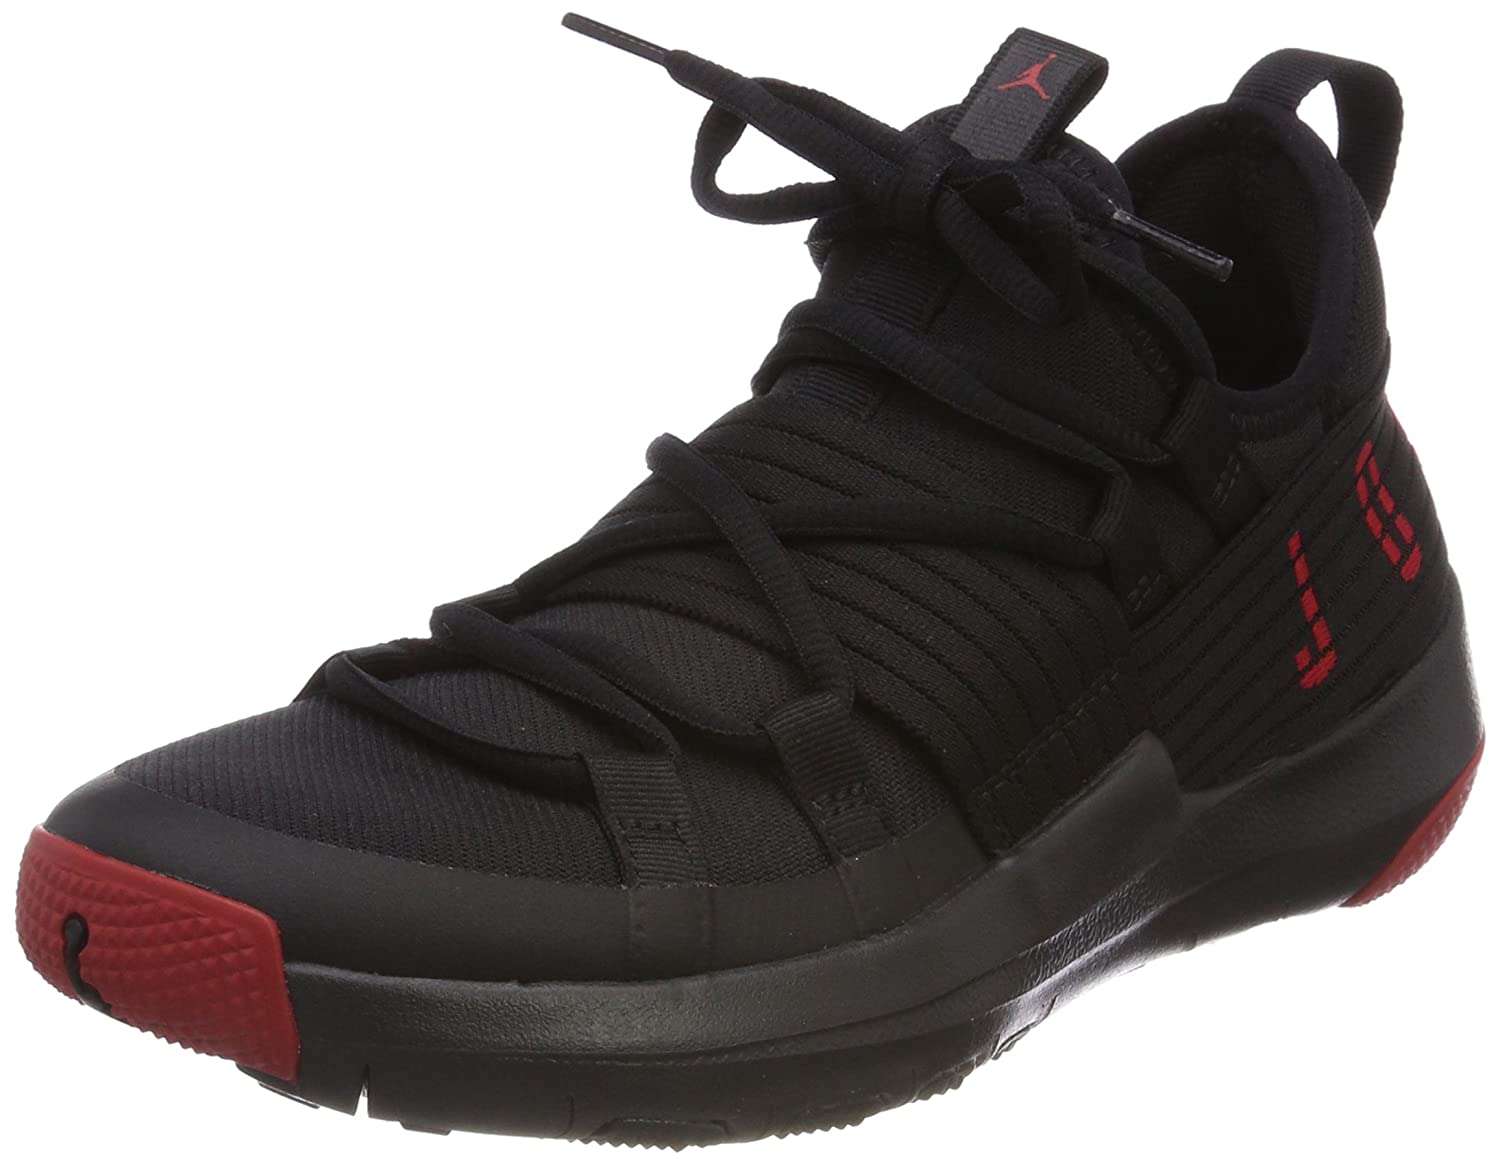 Jordan Trainer Pro Black/Gym Red-Gym Red (Big Kid)